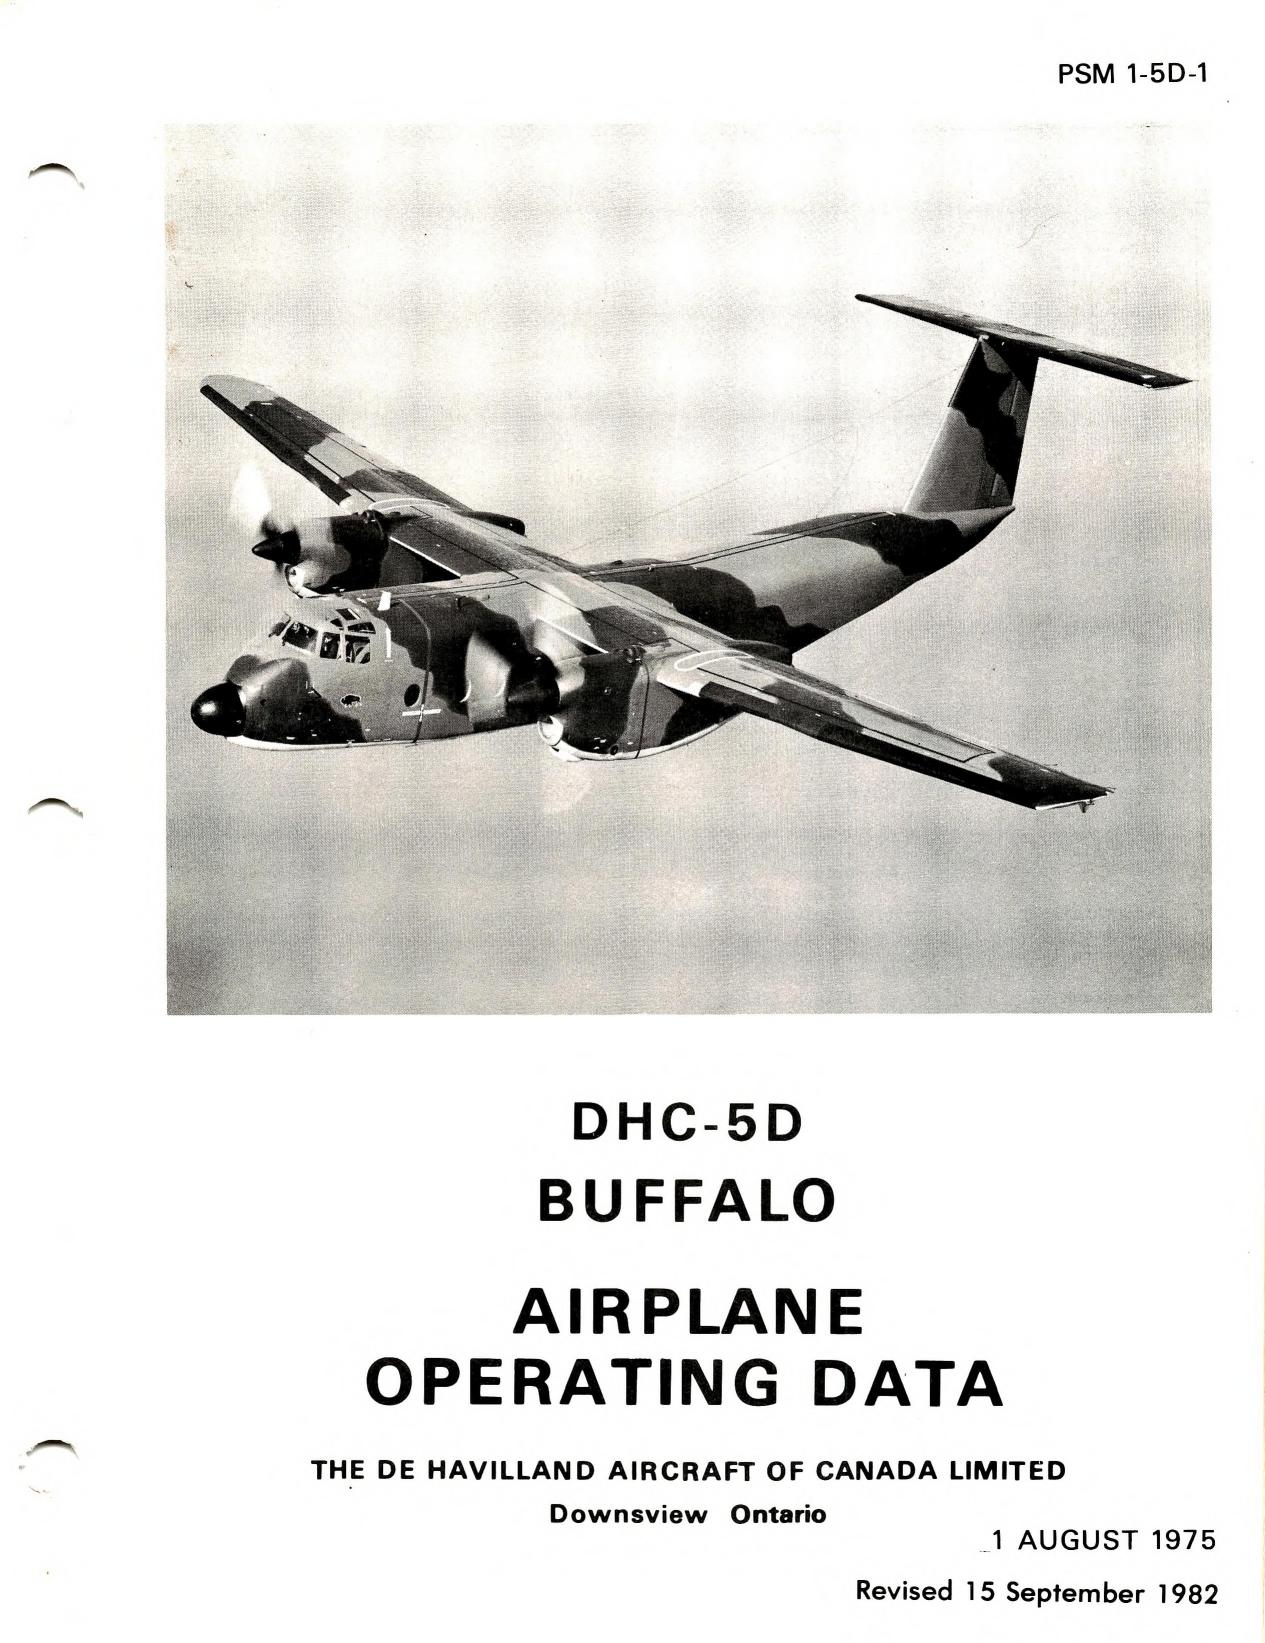 DHC-5D Buffalo airplane operating data